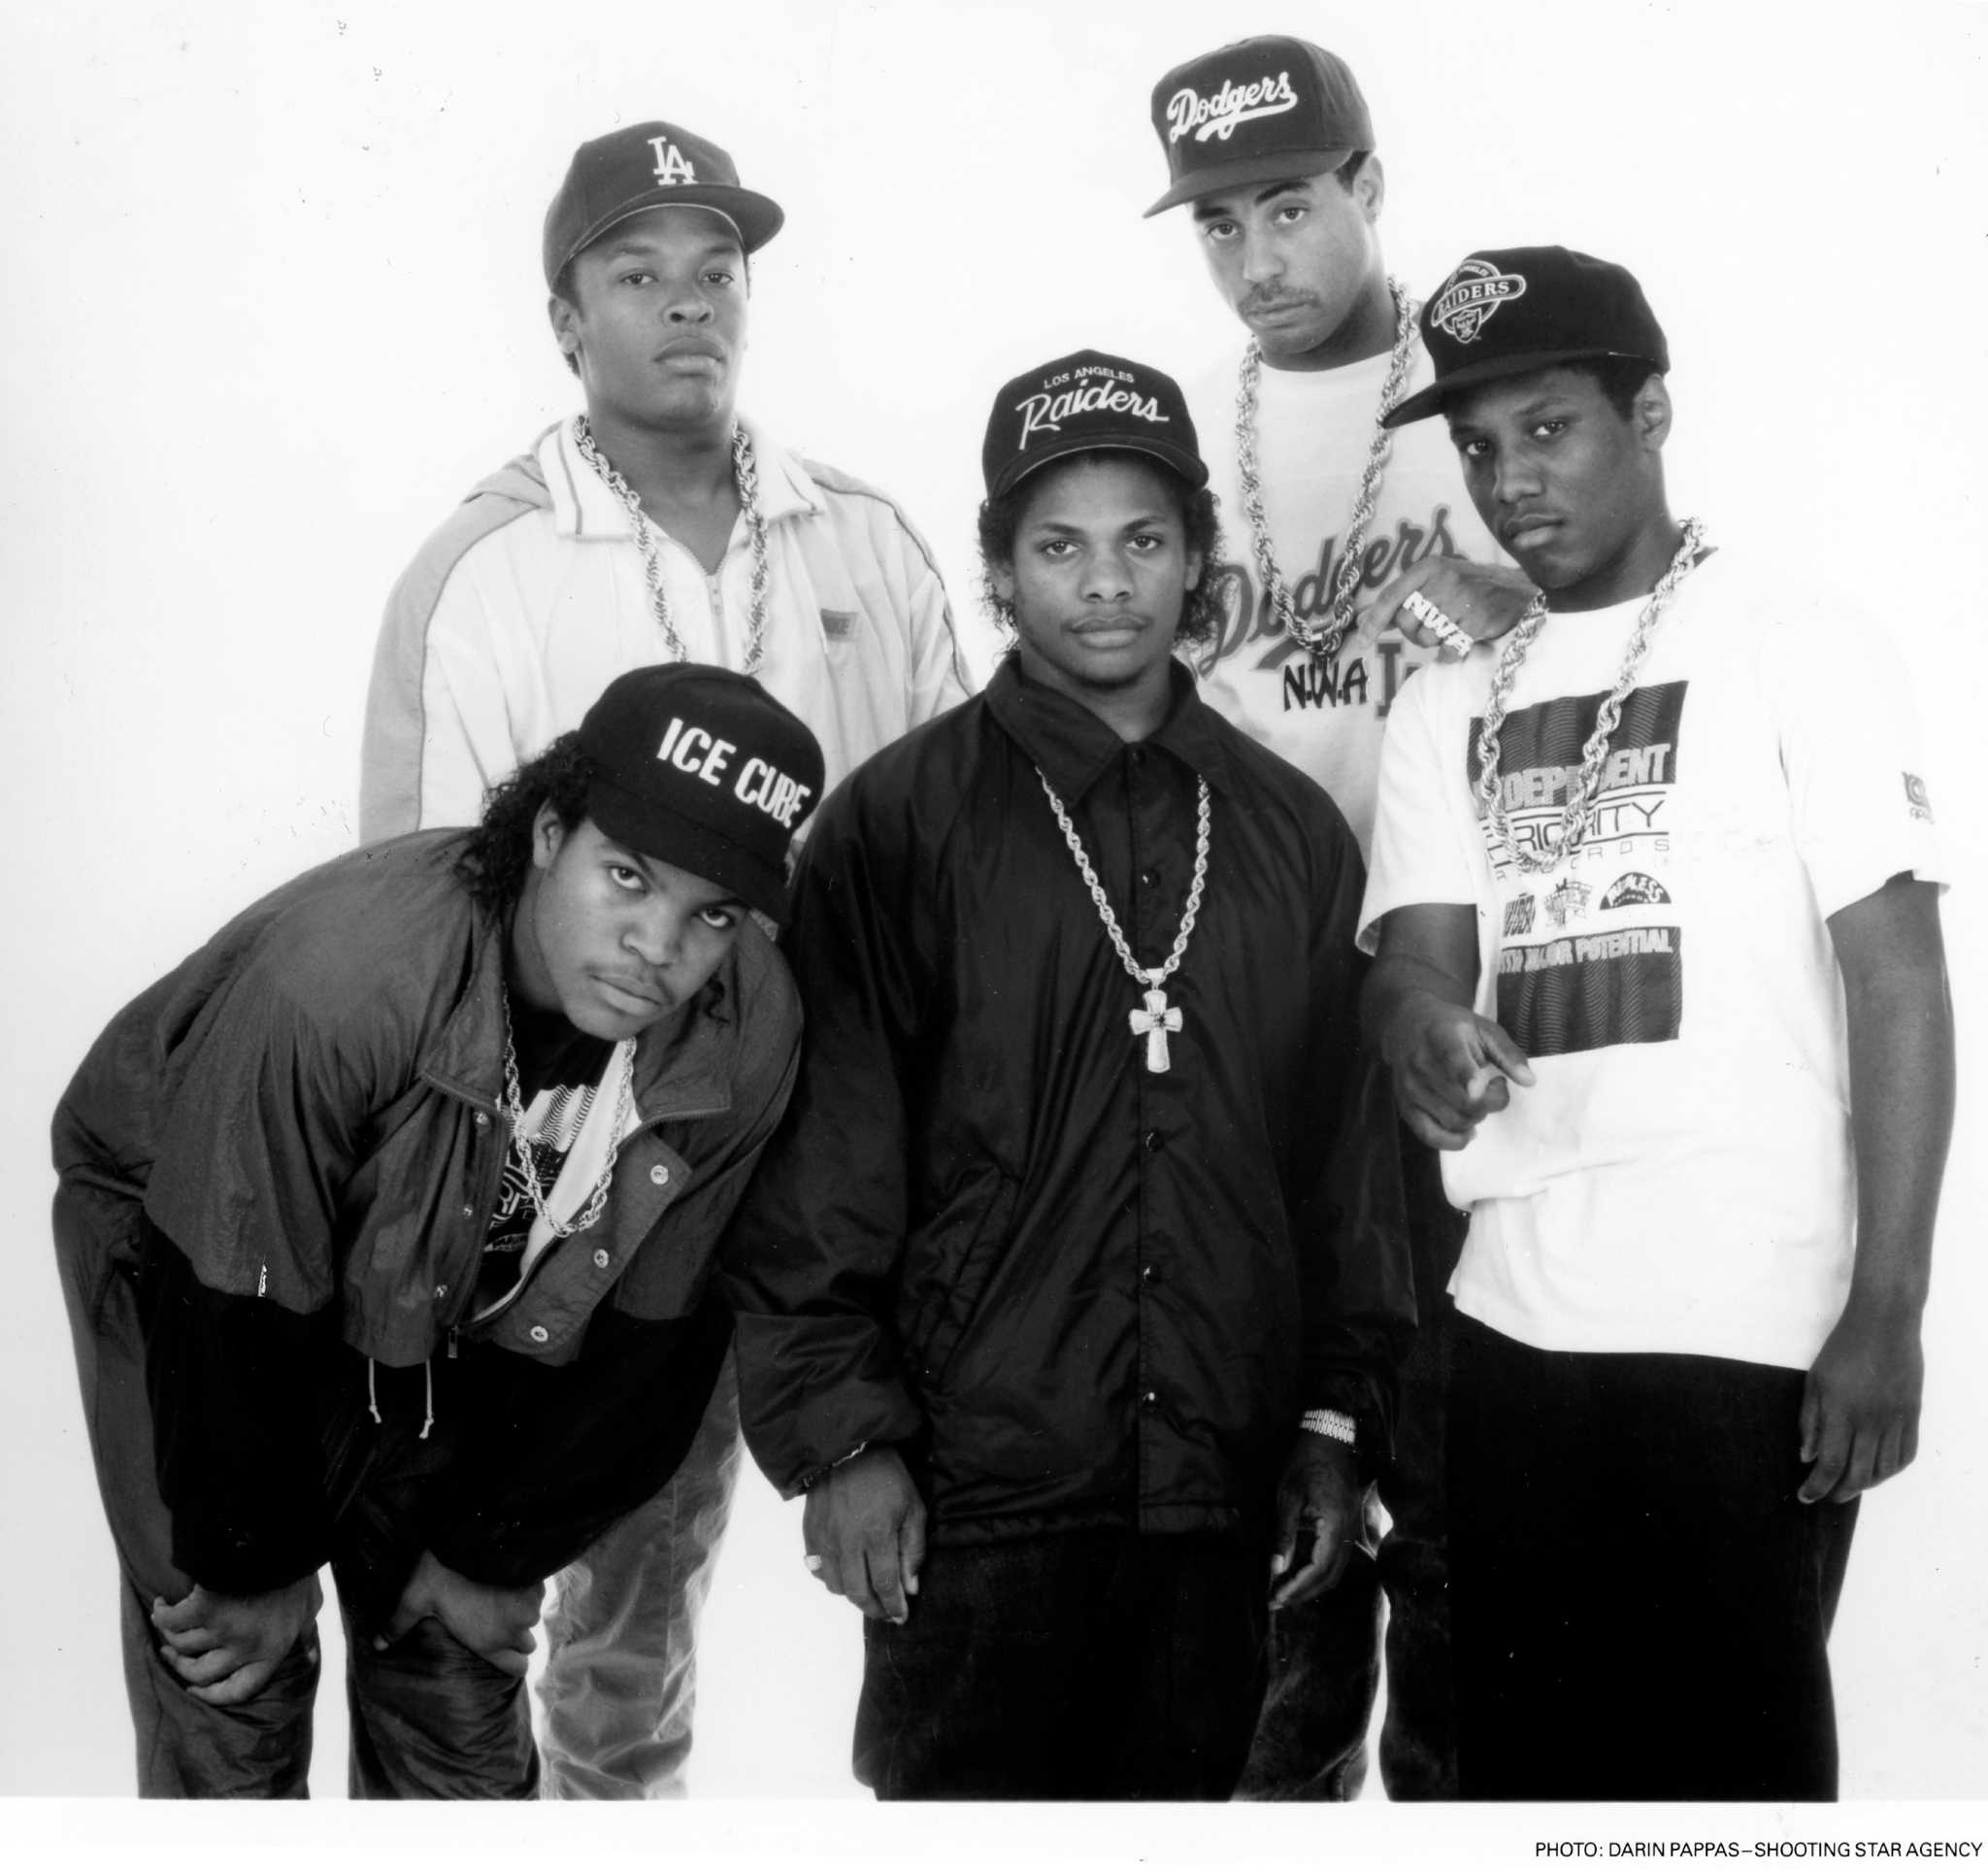 N.W.A. To Be Inducted Into Rock And Roll Hall Of Fame, But Won't Perform